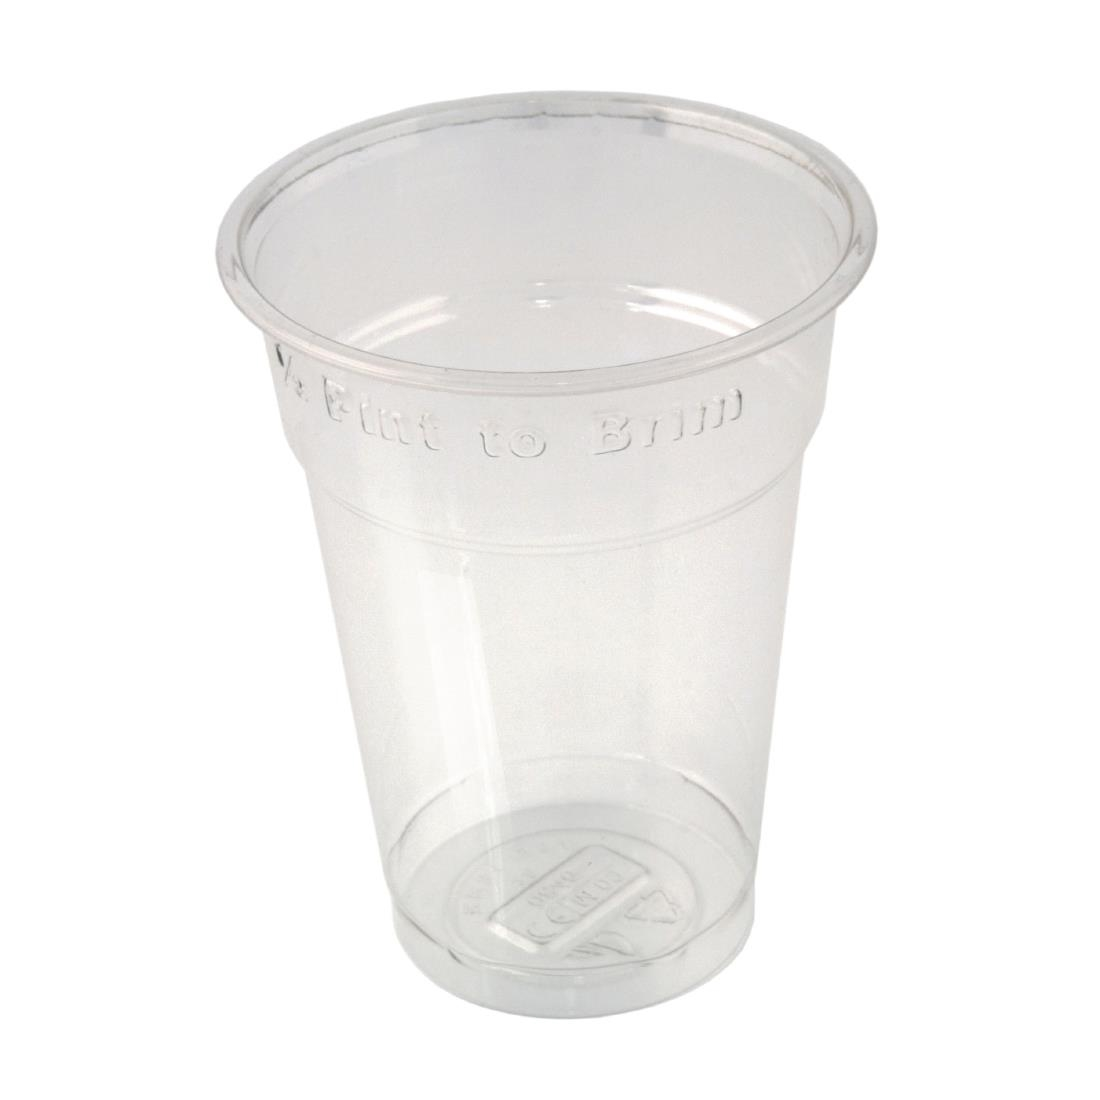 Image of Huhtamaki Disposable Half Pint to Brim Tumbler (Pack of 1000) Pack of 1000